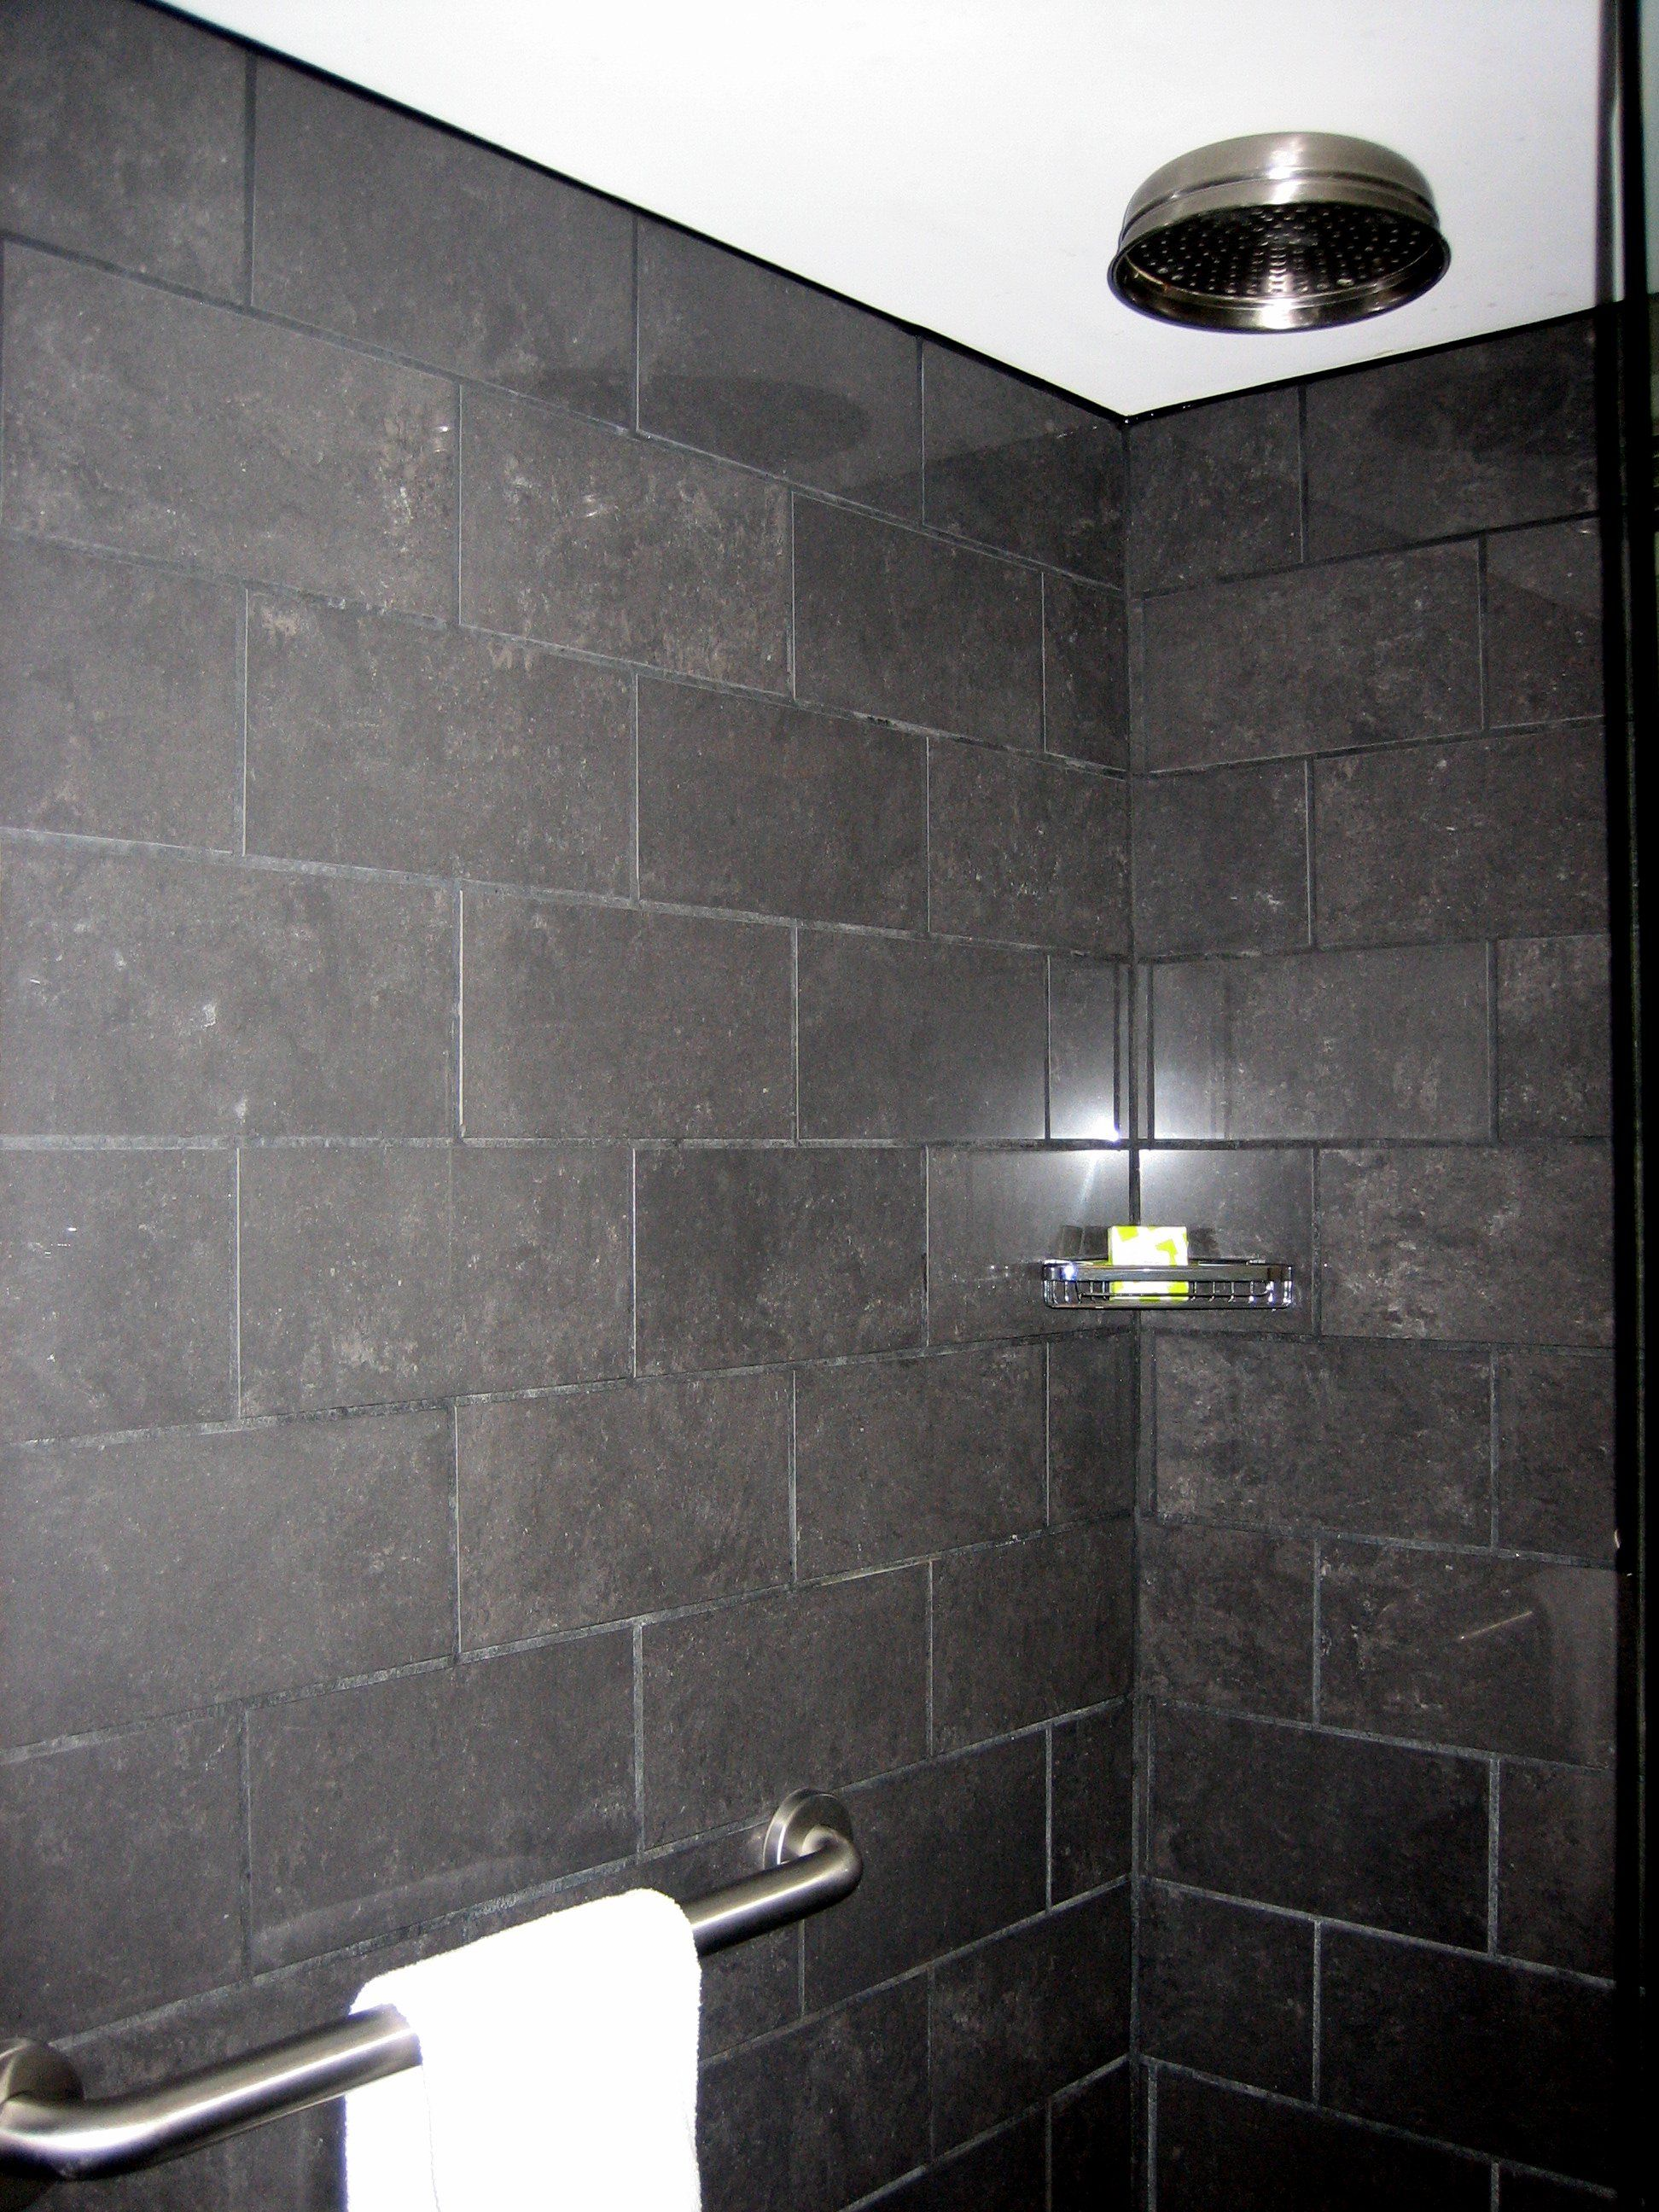 12x24 Tile Installed Horizontal Brick Pattern Rain Head Tile Bathroom Brick Patterns 12x24 Tile